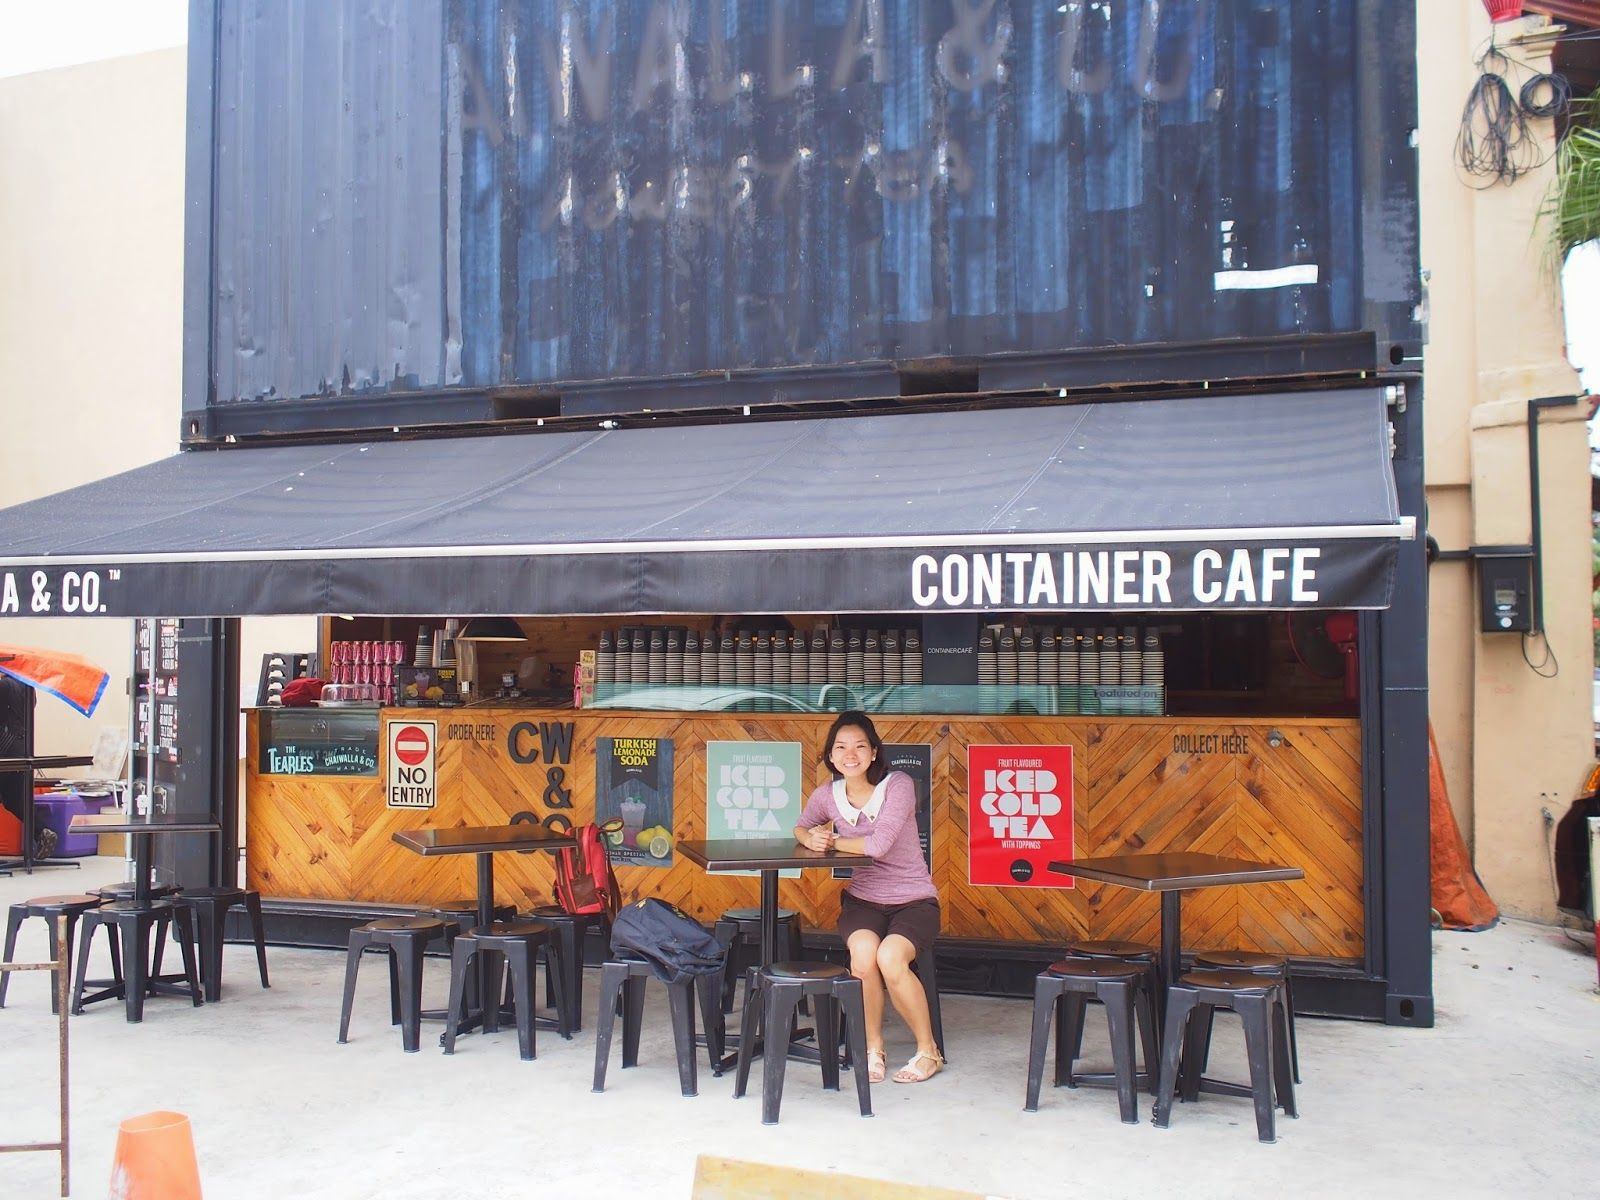 Dining In Johor Bahru Cafes And Eateries Within Walking Distance From Jb City Square Malaysia Muses Your Daily Doses Of Johor Johor Bahru Cafe